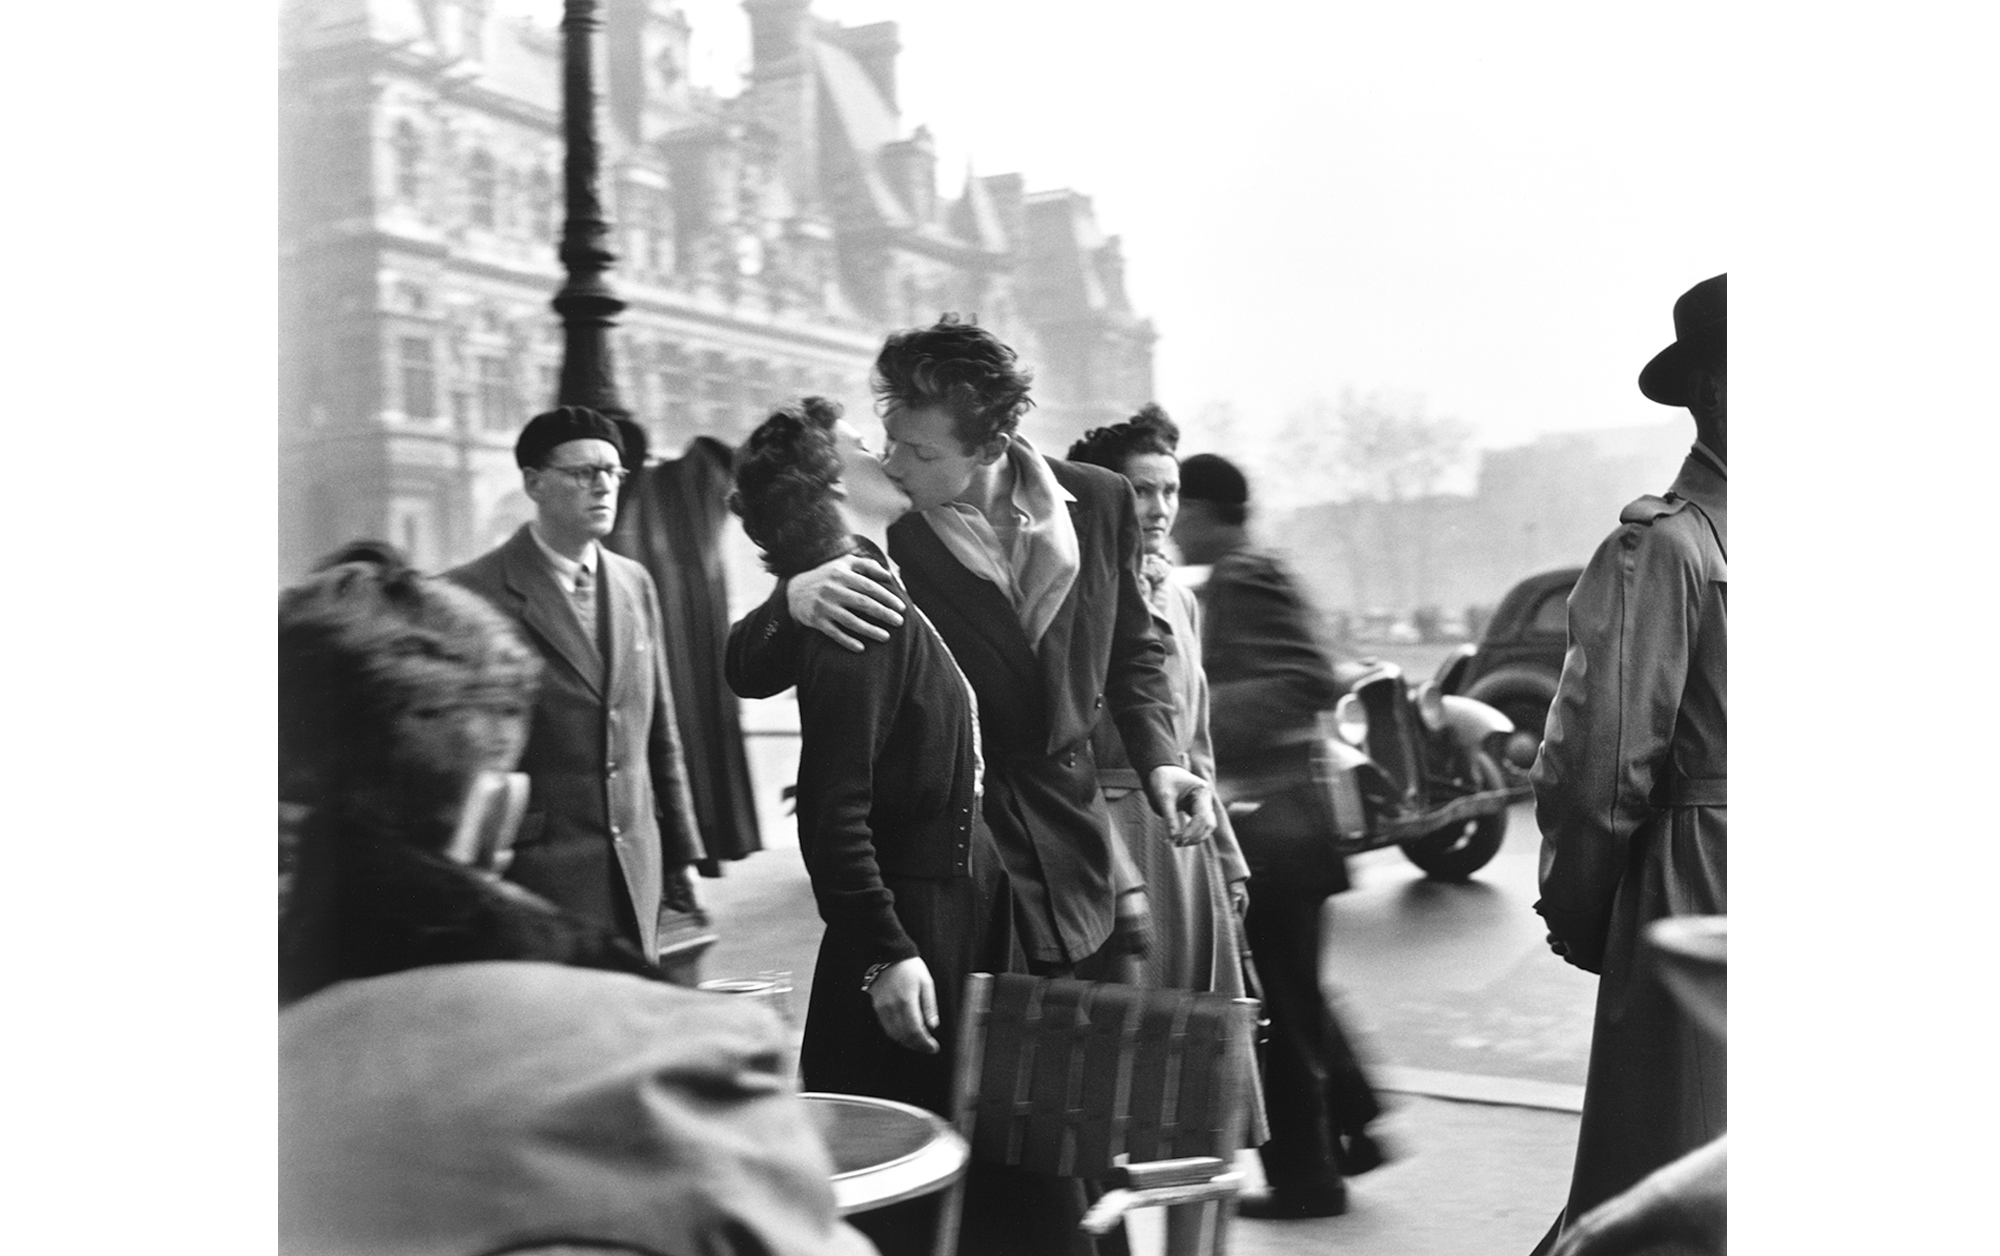 © Atelier Robert Doisneau / CONTACT 写大ギャラリー所蔵作品